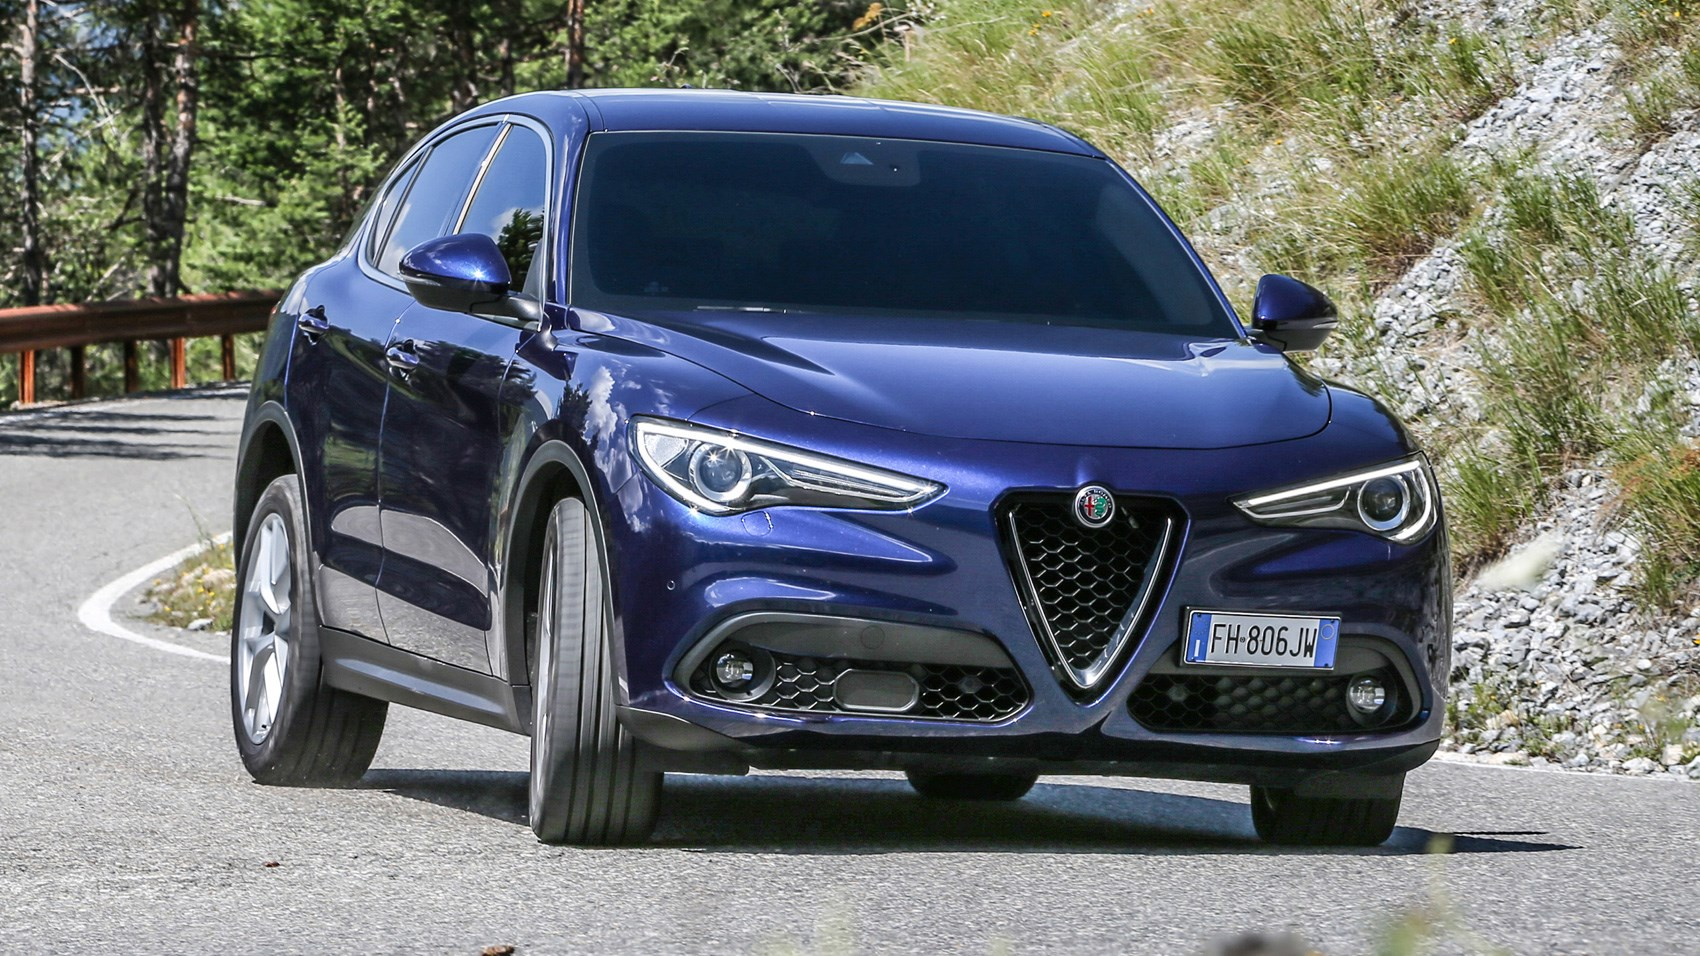 Alfa romeo q4 stelvio for sale 12